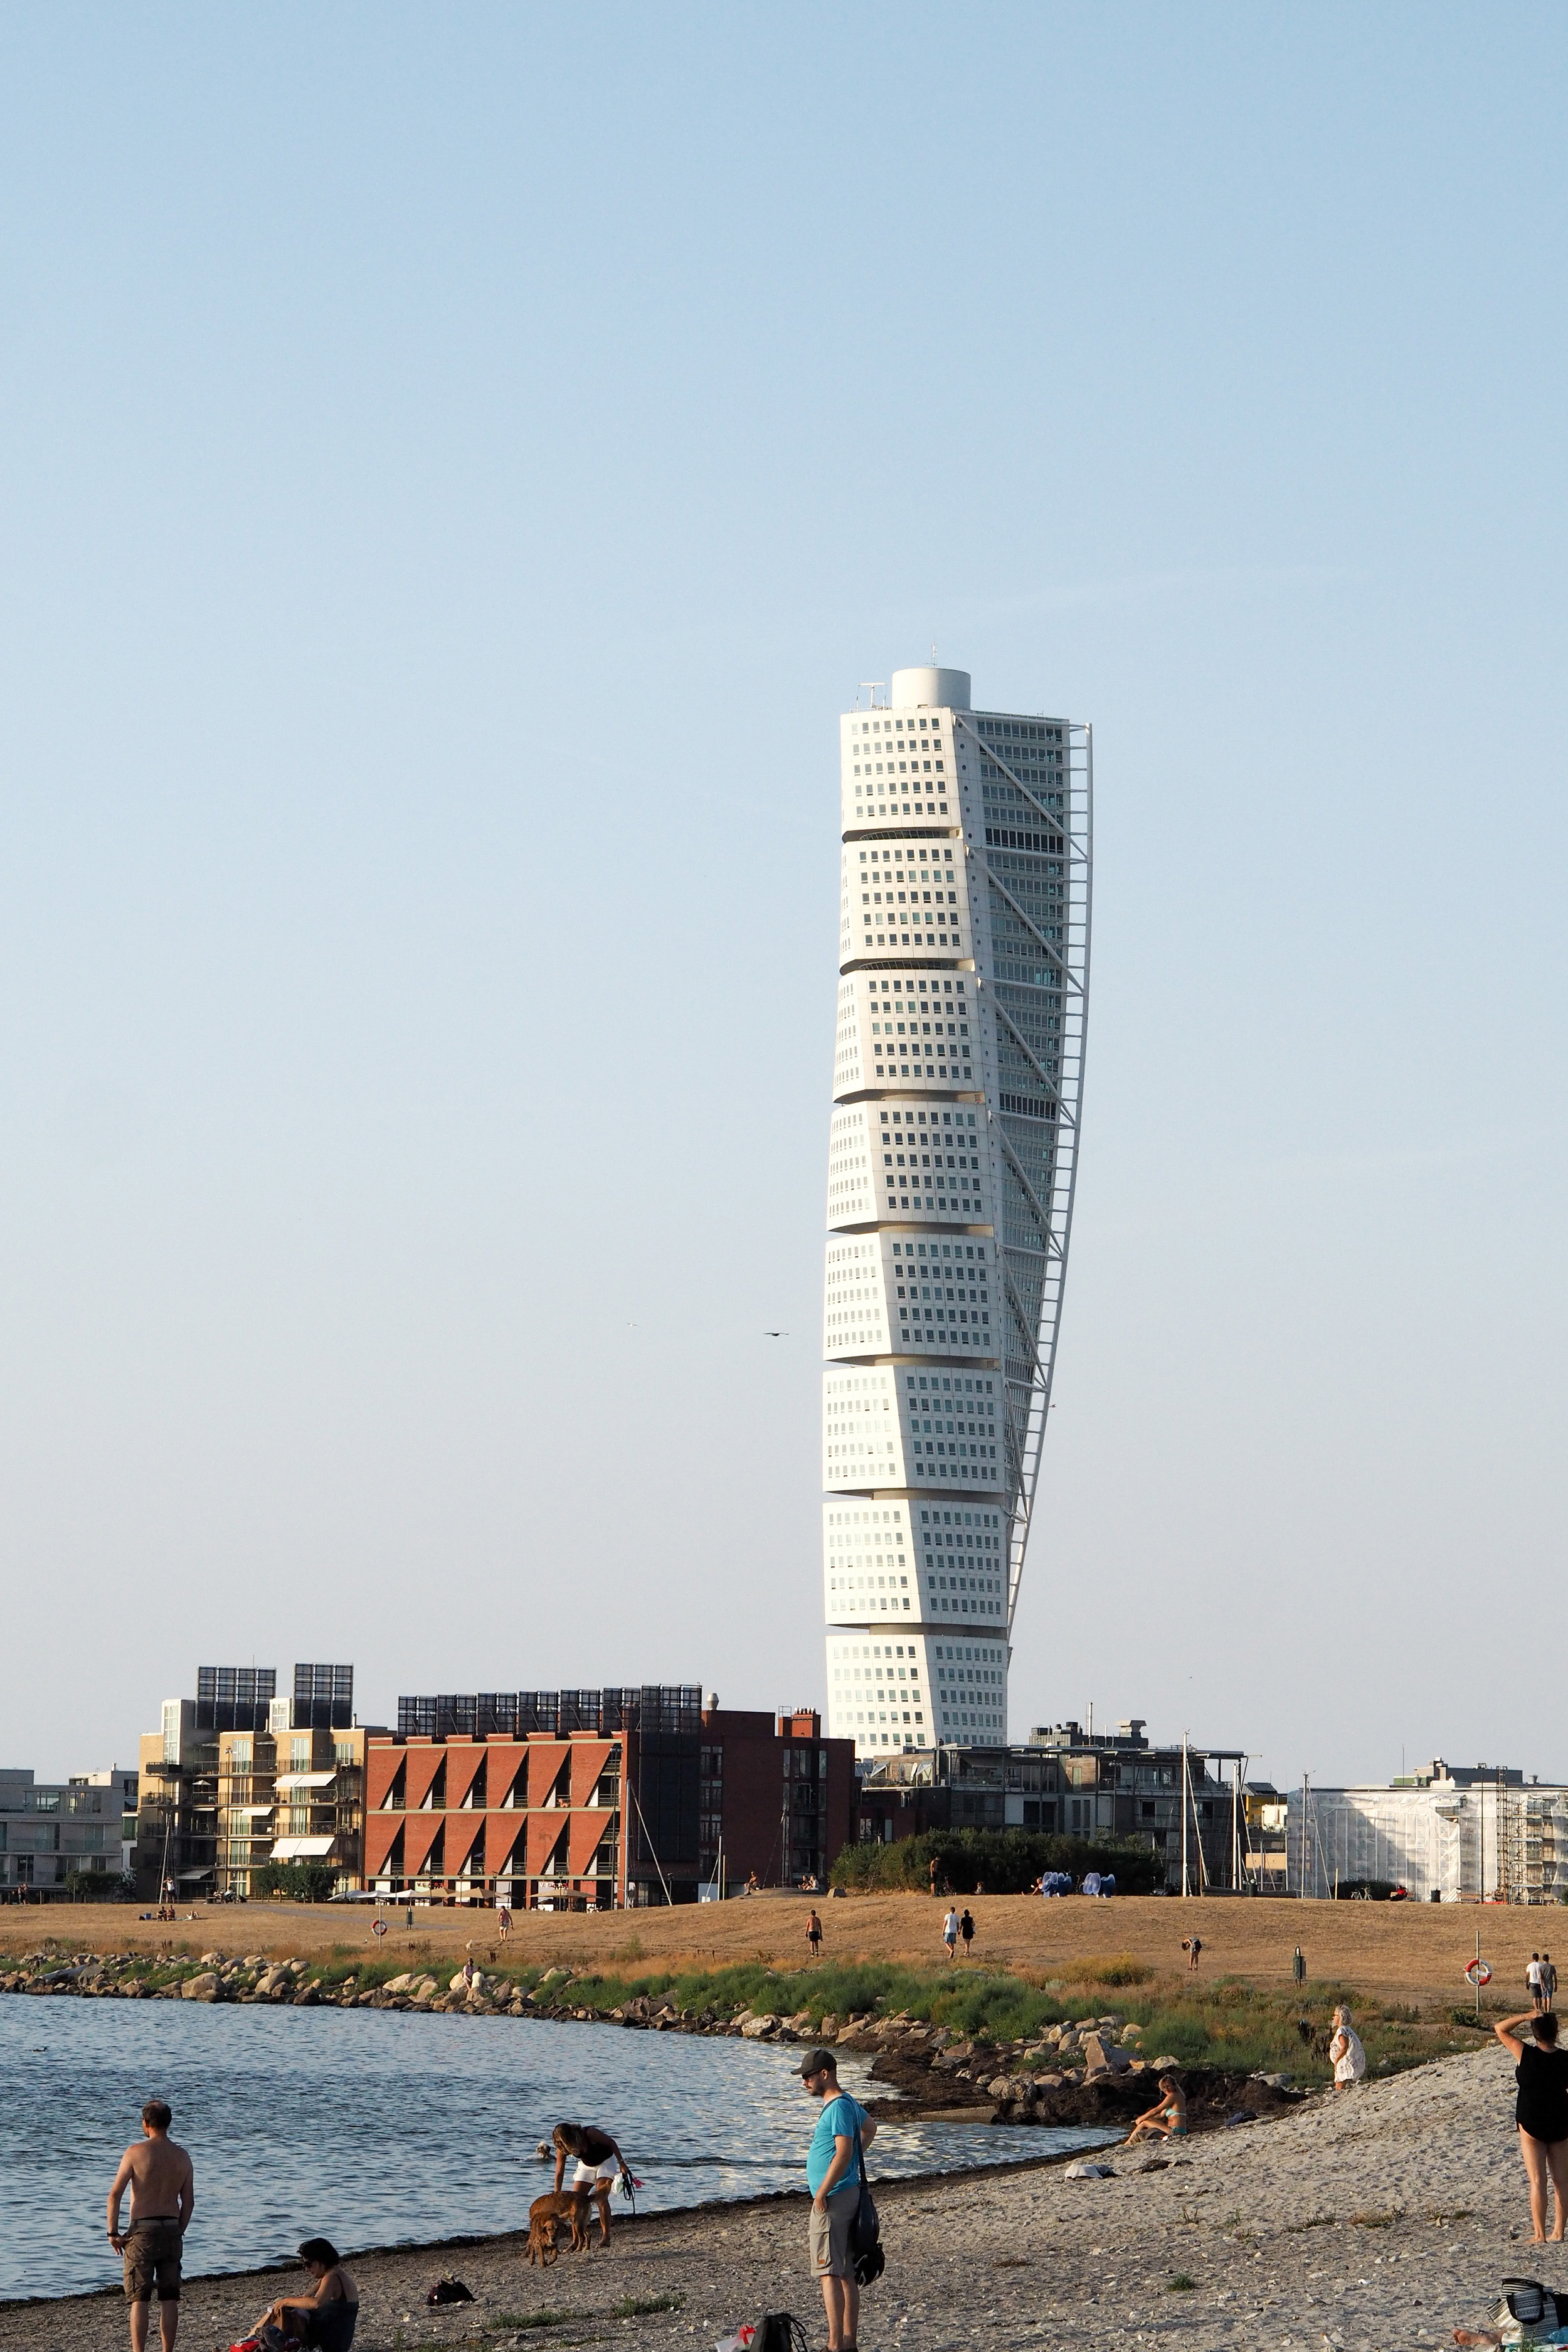 Malmö - the Swedish town from across the bridge [a travel guide]